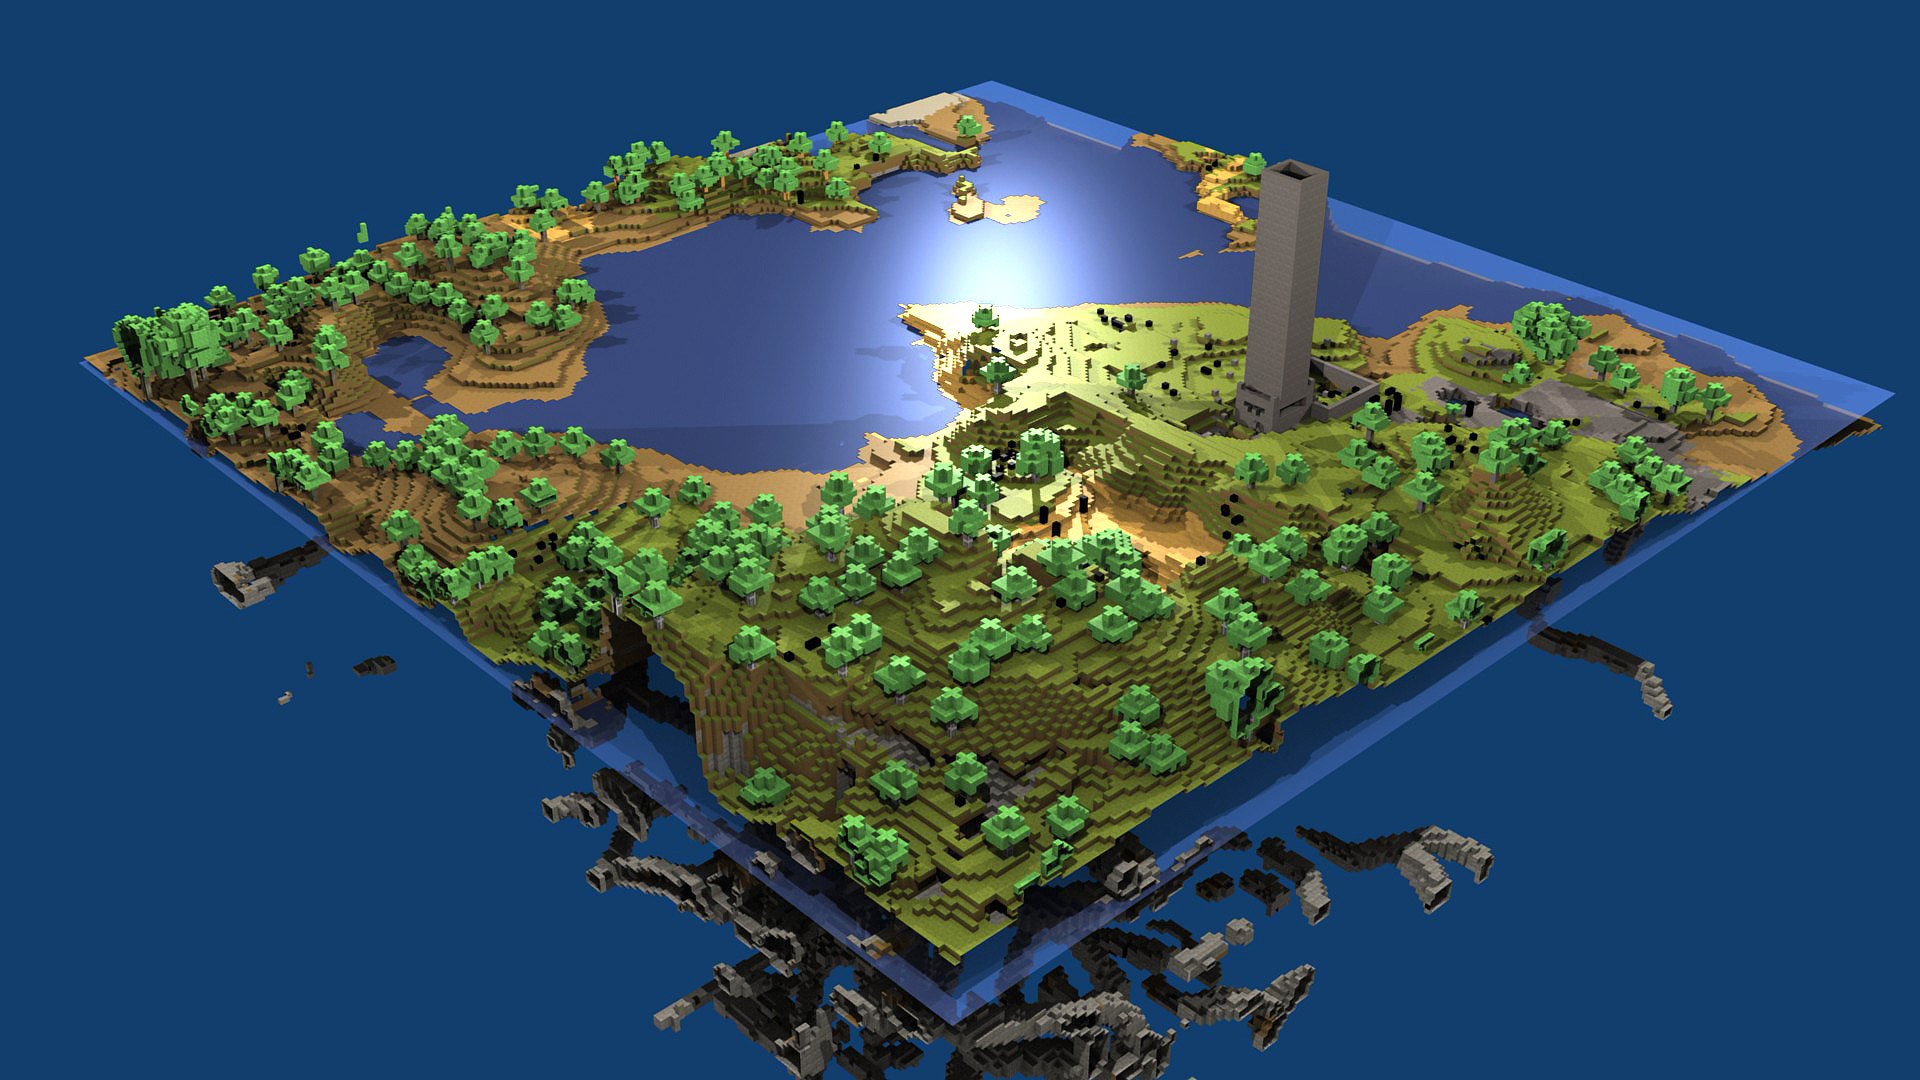 Bringing back the voxel starforge cube world and the return of a i got the idea while playing minecraft wrote wolfram von funck aka wollay developer of the independent game cube world i was fascinated by the idea gumiabroncs Choice Image